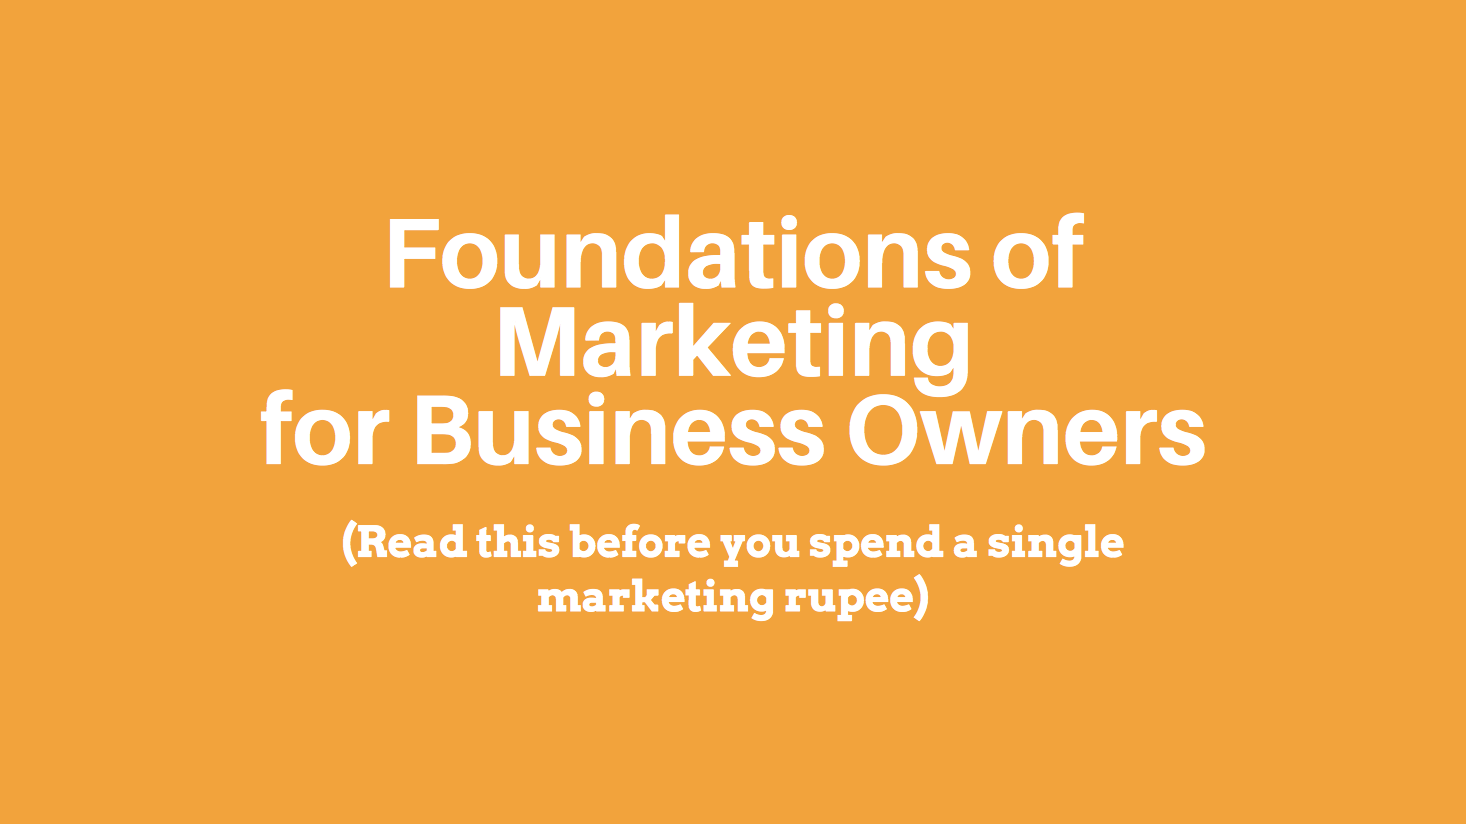 Foundations of Marketing for Business Owners (Read this before you spend a single marketing rupee)